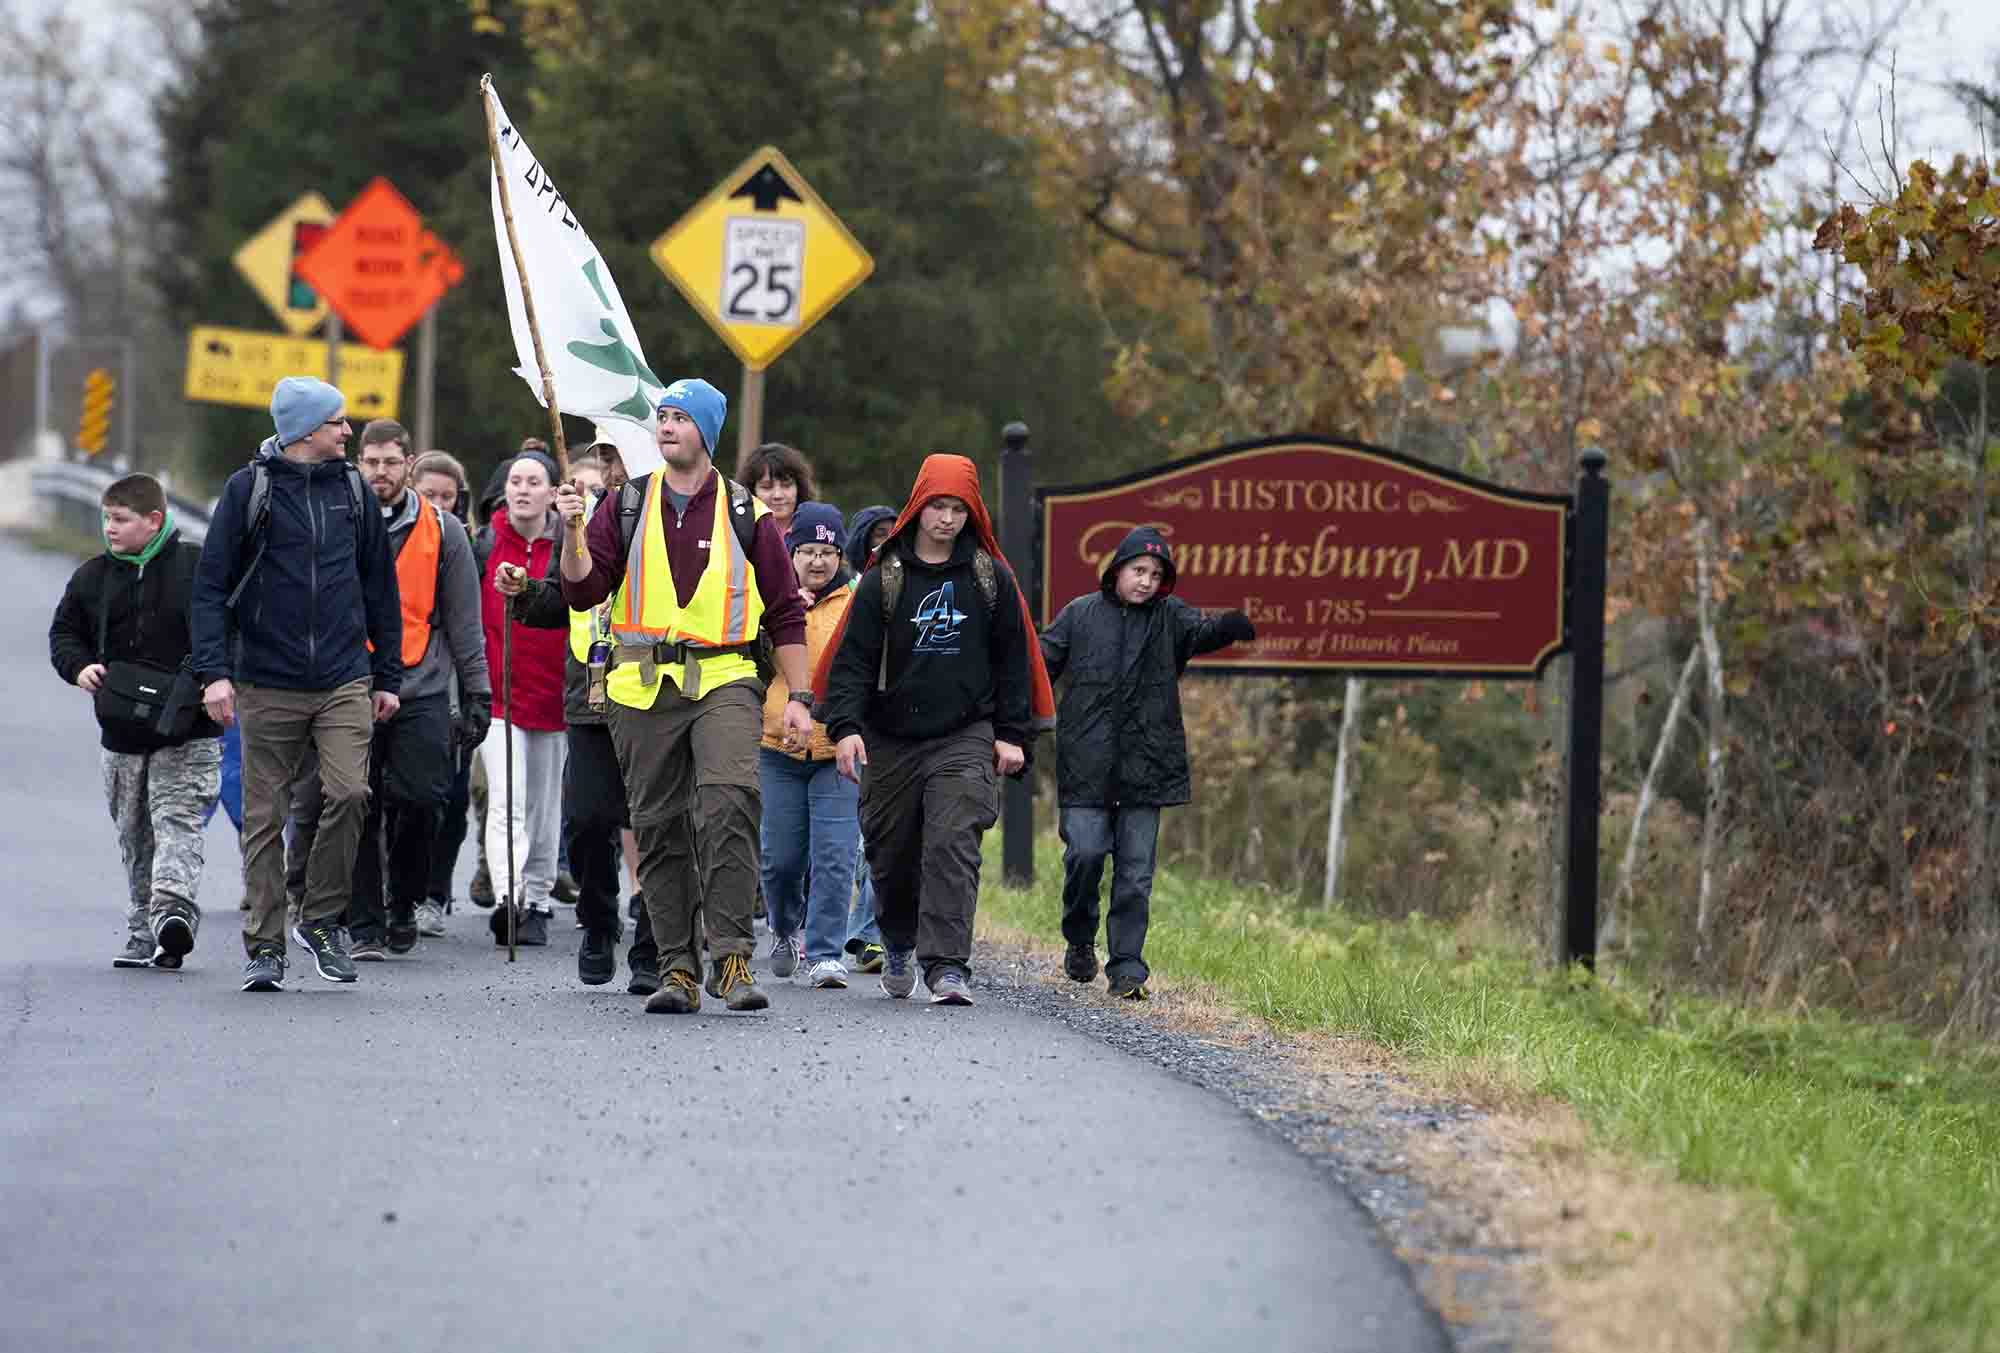 Pilgrims set out on 50-mile walk in penance, prayer from Emmitsburg to Baltimore